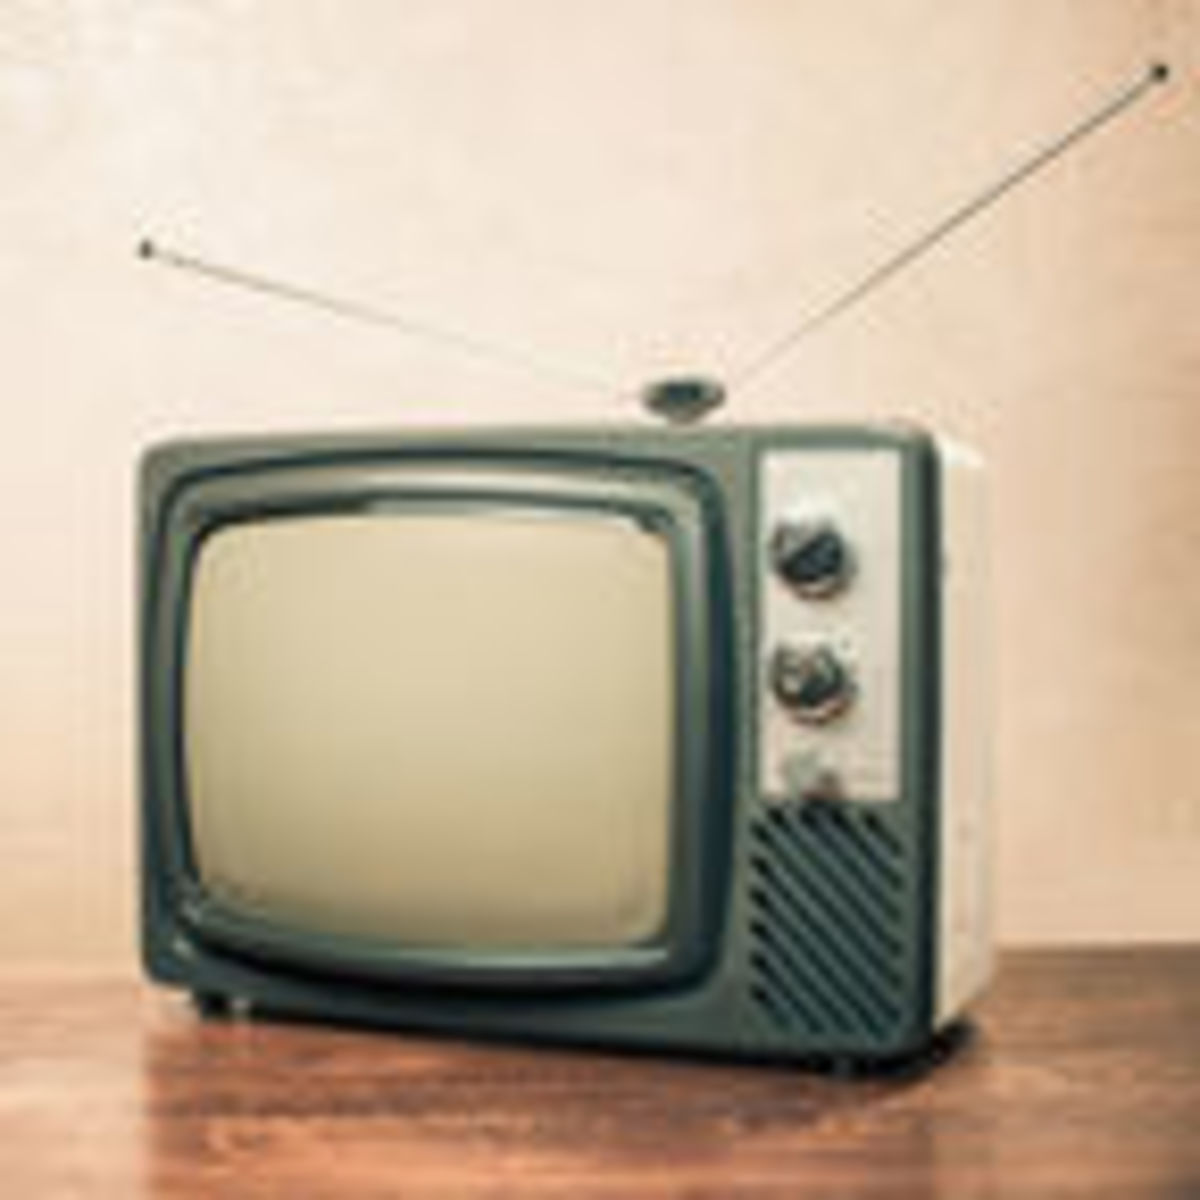 Is Television Dying? | Psychology Today